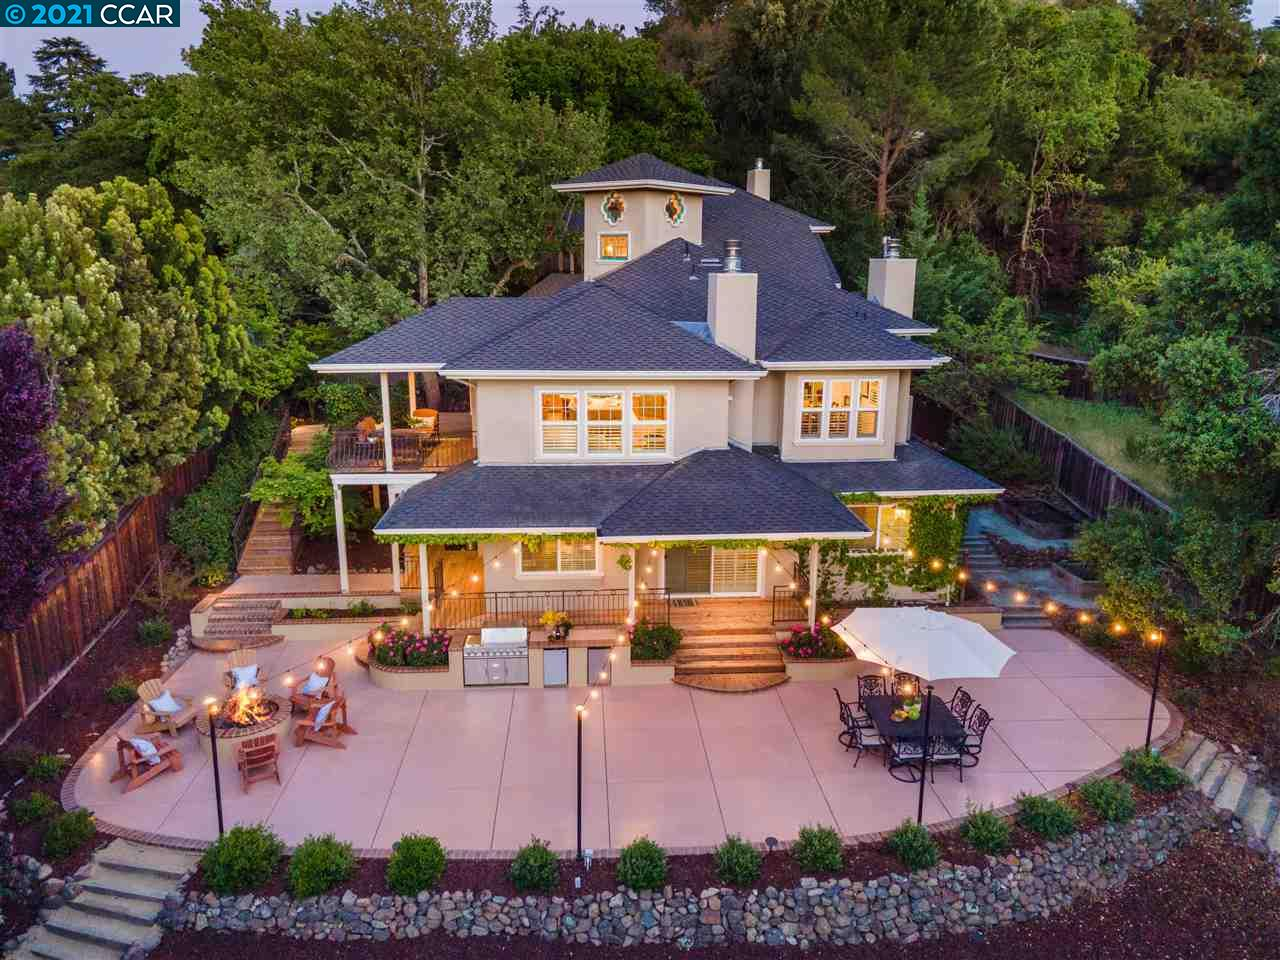 Beautiful custom designed gated home in hills of Walnut Creek, w/private setting/hillside views. On over ½ acre, expansive backyard:built-in BBQ/kitchen, covered deck, multiple patios, bocce ball court, garden beds, garden shed, gas fire pit & mature landscaping. Stunning elements: soaring ceilings, hardwood floors, picturesque windows & natural light. Open floor plan:spacious living room w/fireplace, elegant dining room, executive office w/built-in desks/shelving & large family room overlooking backyard. Gourmet kitchen: granite counters, custom cabinetry, high-end appliances, two sinks, center island w/range & custom hood w/access to deck. Master retreat:sitting area, gas fireplace, private deck w/hot tub & french doors to spa-like ensuite w/separate vanities, jetted tub, glass-enclosed shower & walk-in closet. All secondary bdrms are ensuite & generous in size. Wine cellar, perfect for entertaining guests. Close to downtown Alamo Walnut Creek, Broadway Plaza, freeway & BART.